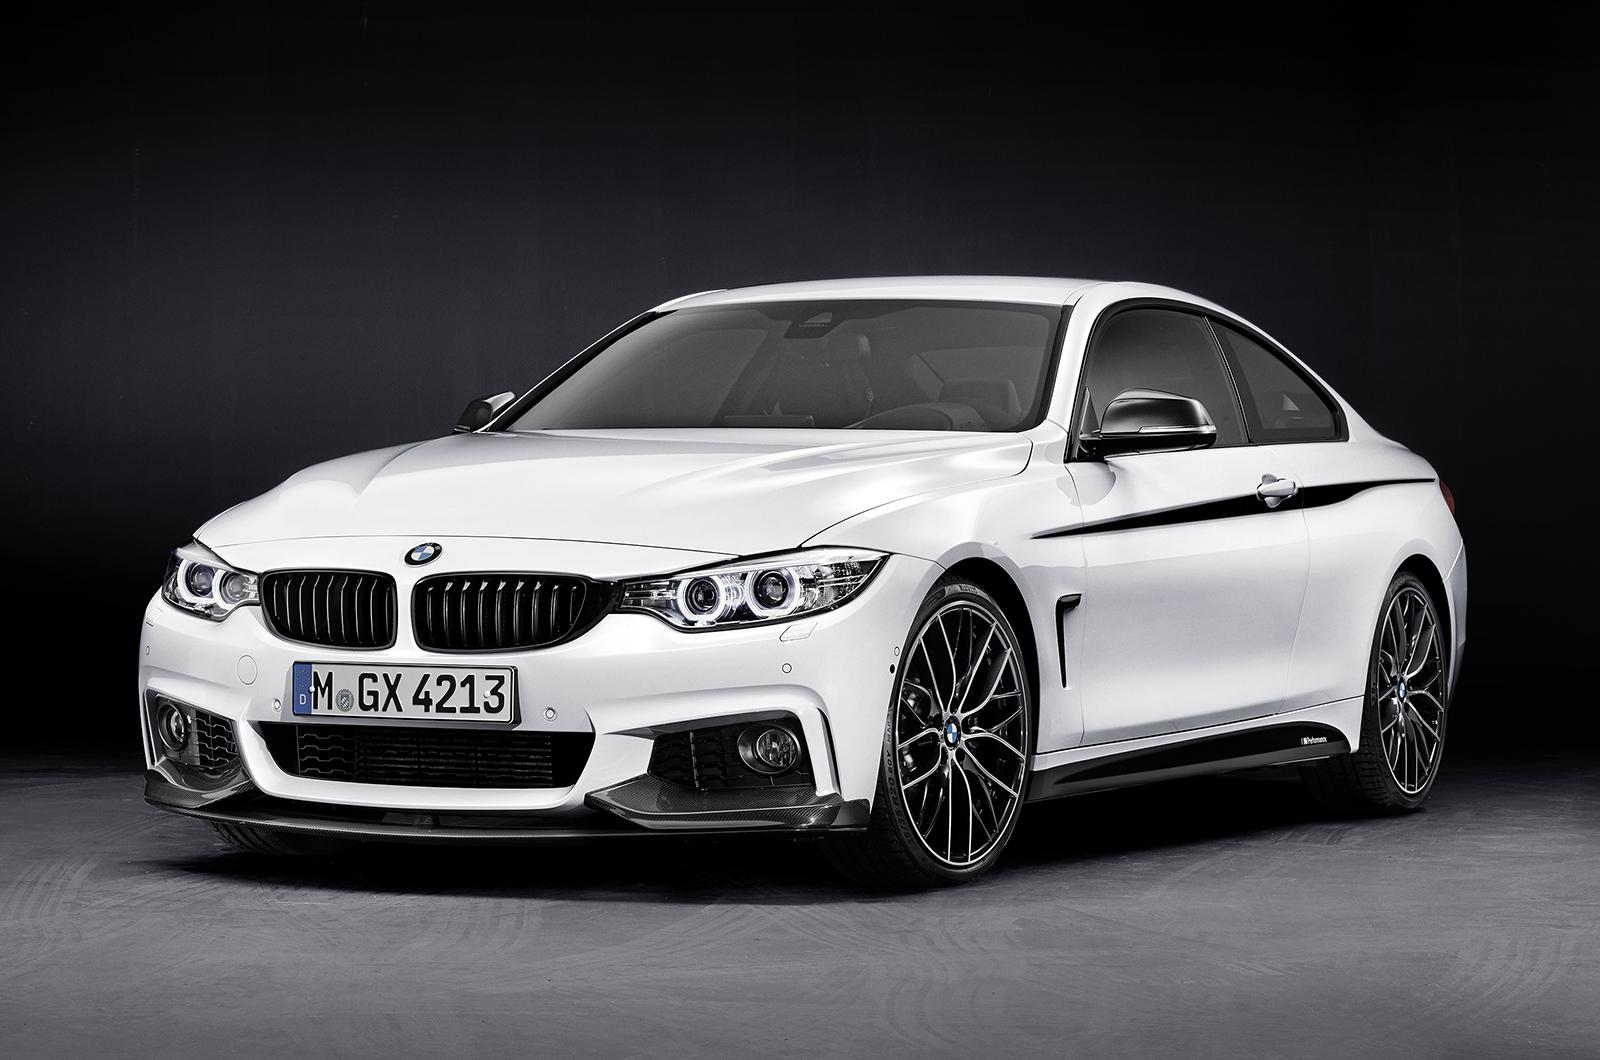 ... revealed a 4-series coupe fitted with M-Performance parts